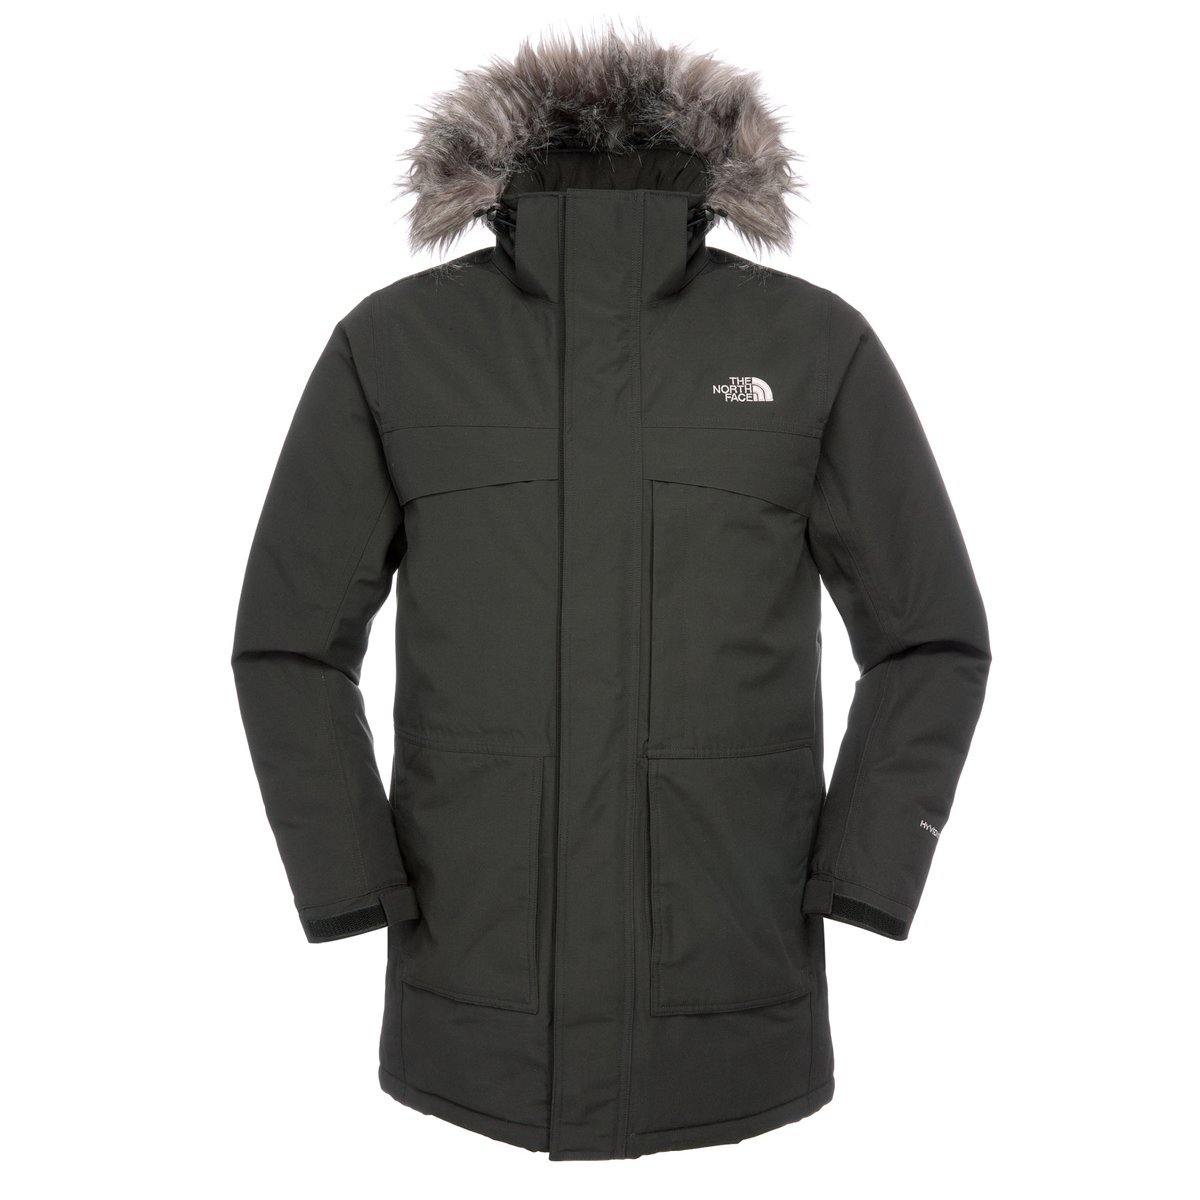 The North Face Herren Jacke Men'Nanavik günstig kaufen